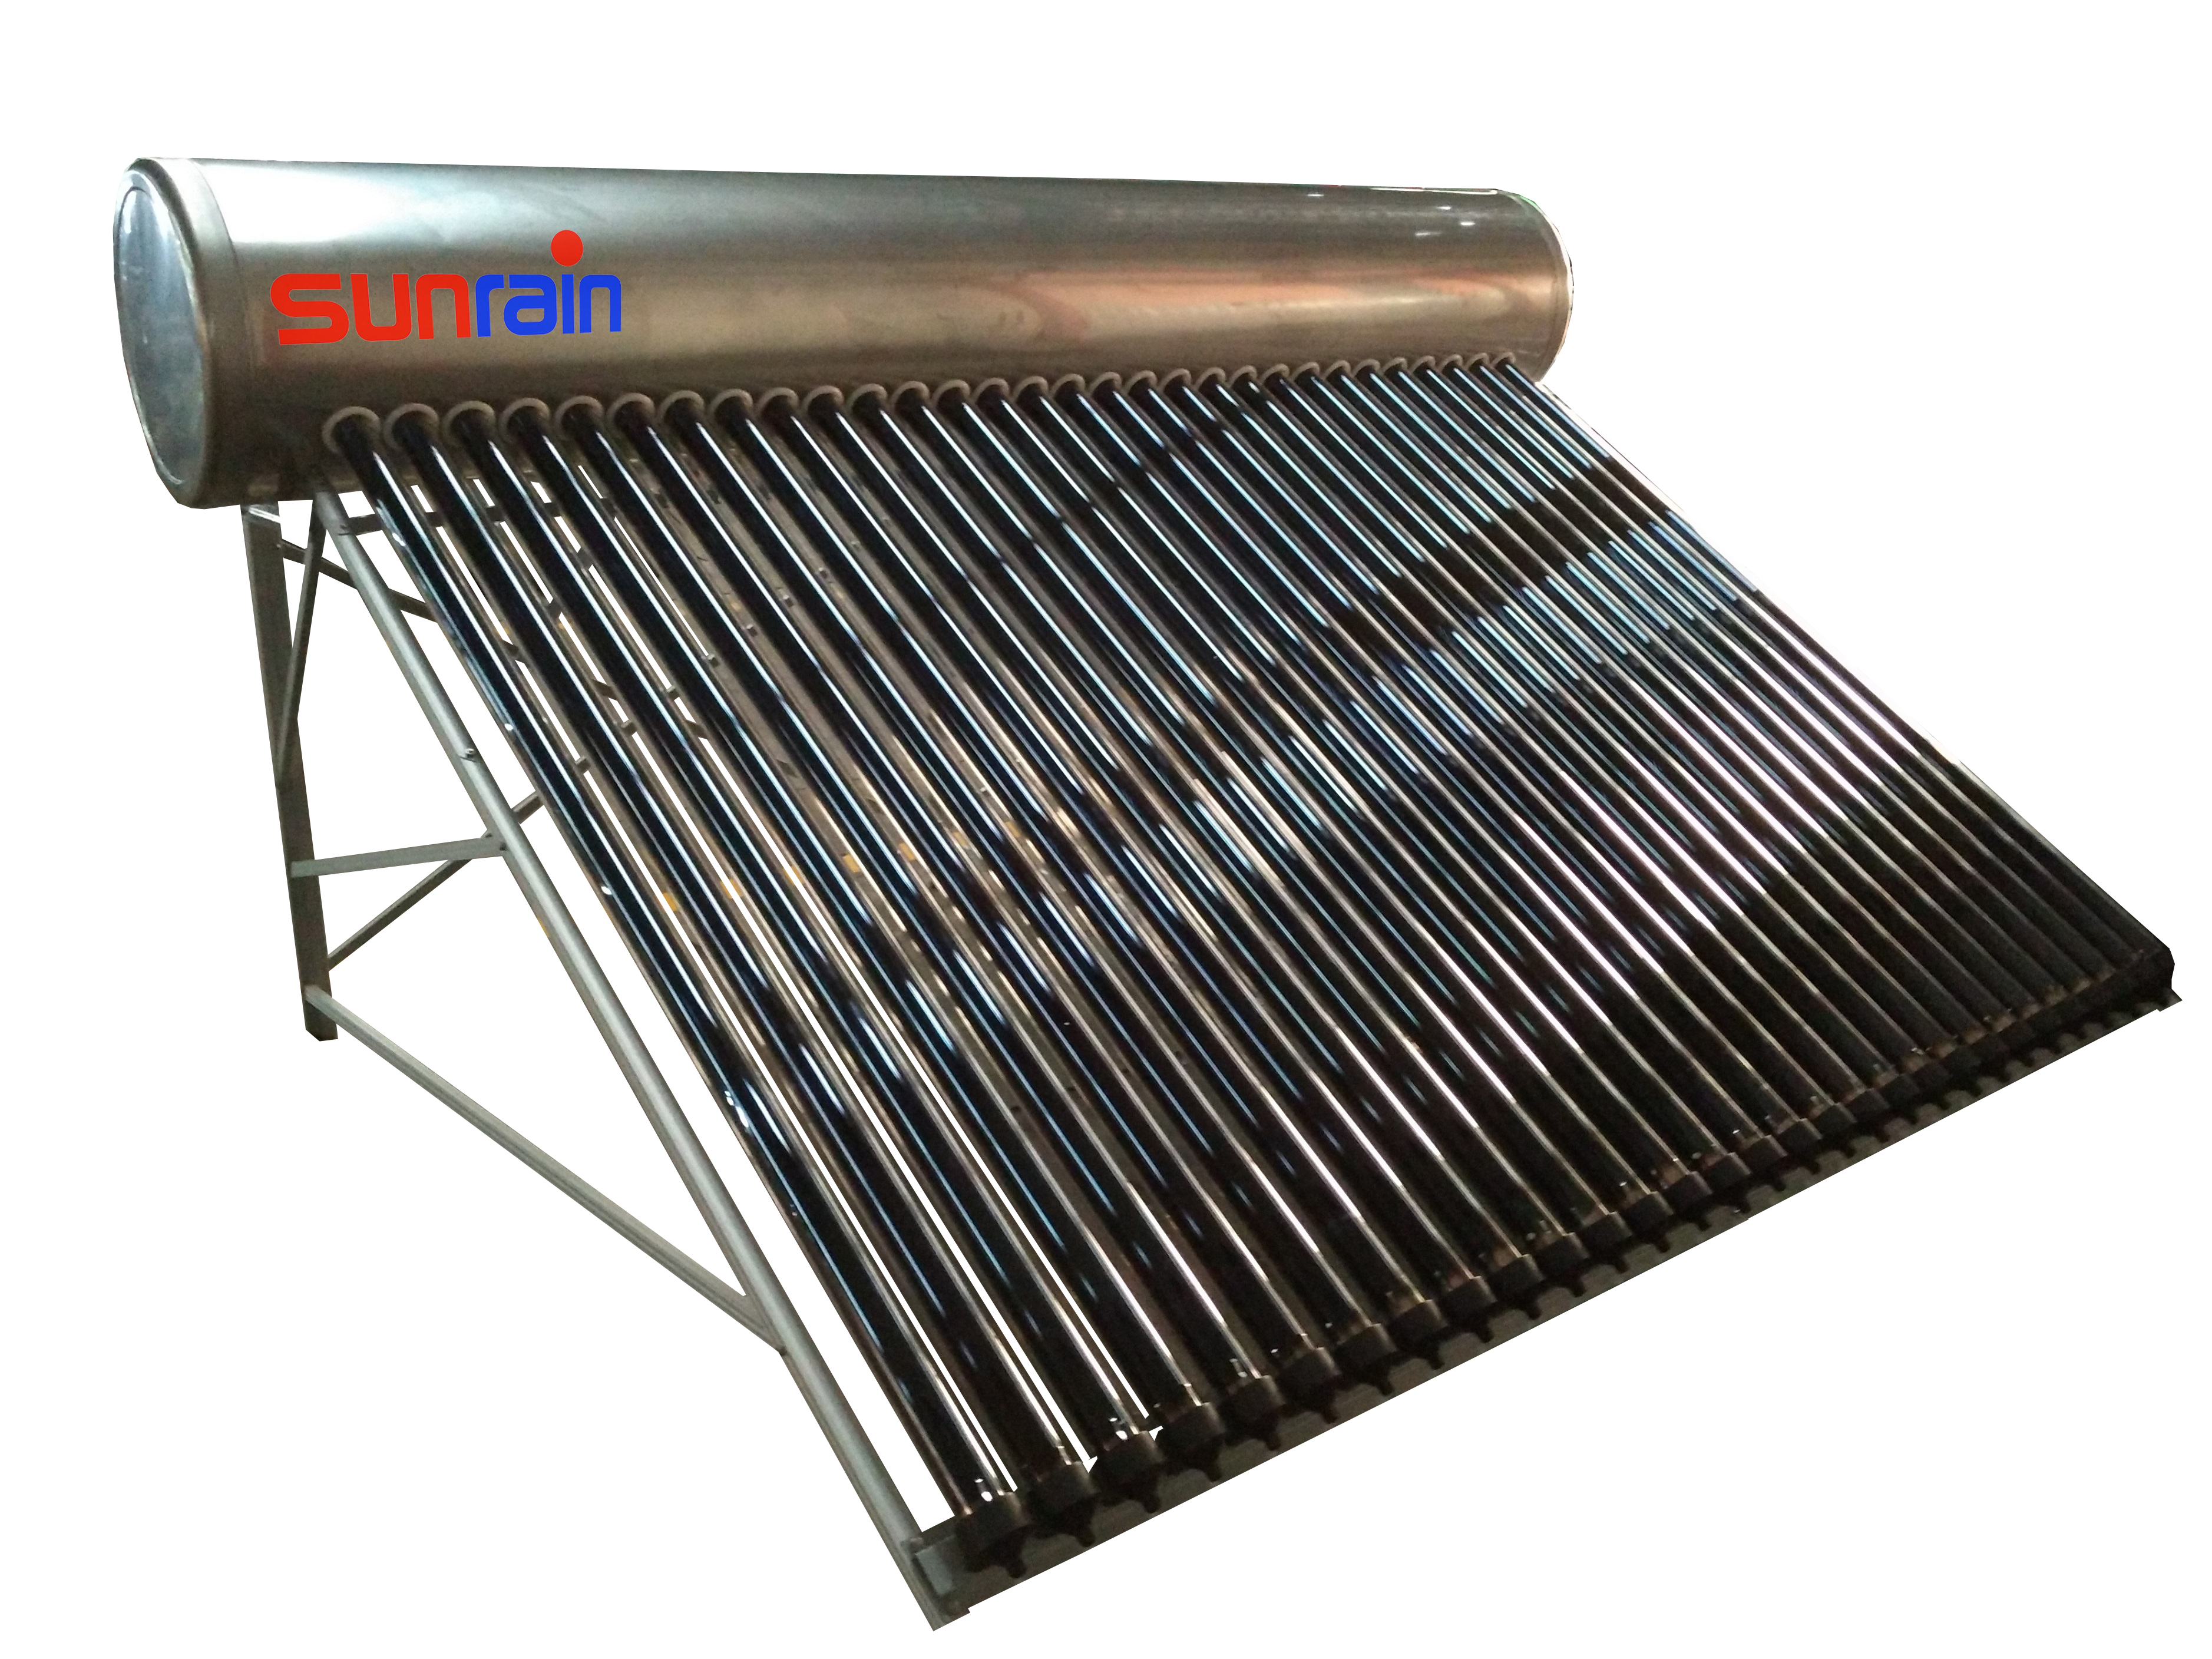 Stainless Steel Compact Solar Hot Water Heater- 80 Gallon solar hot water tank